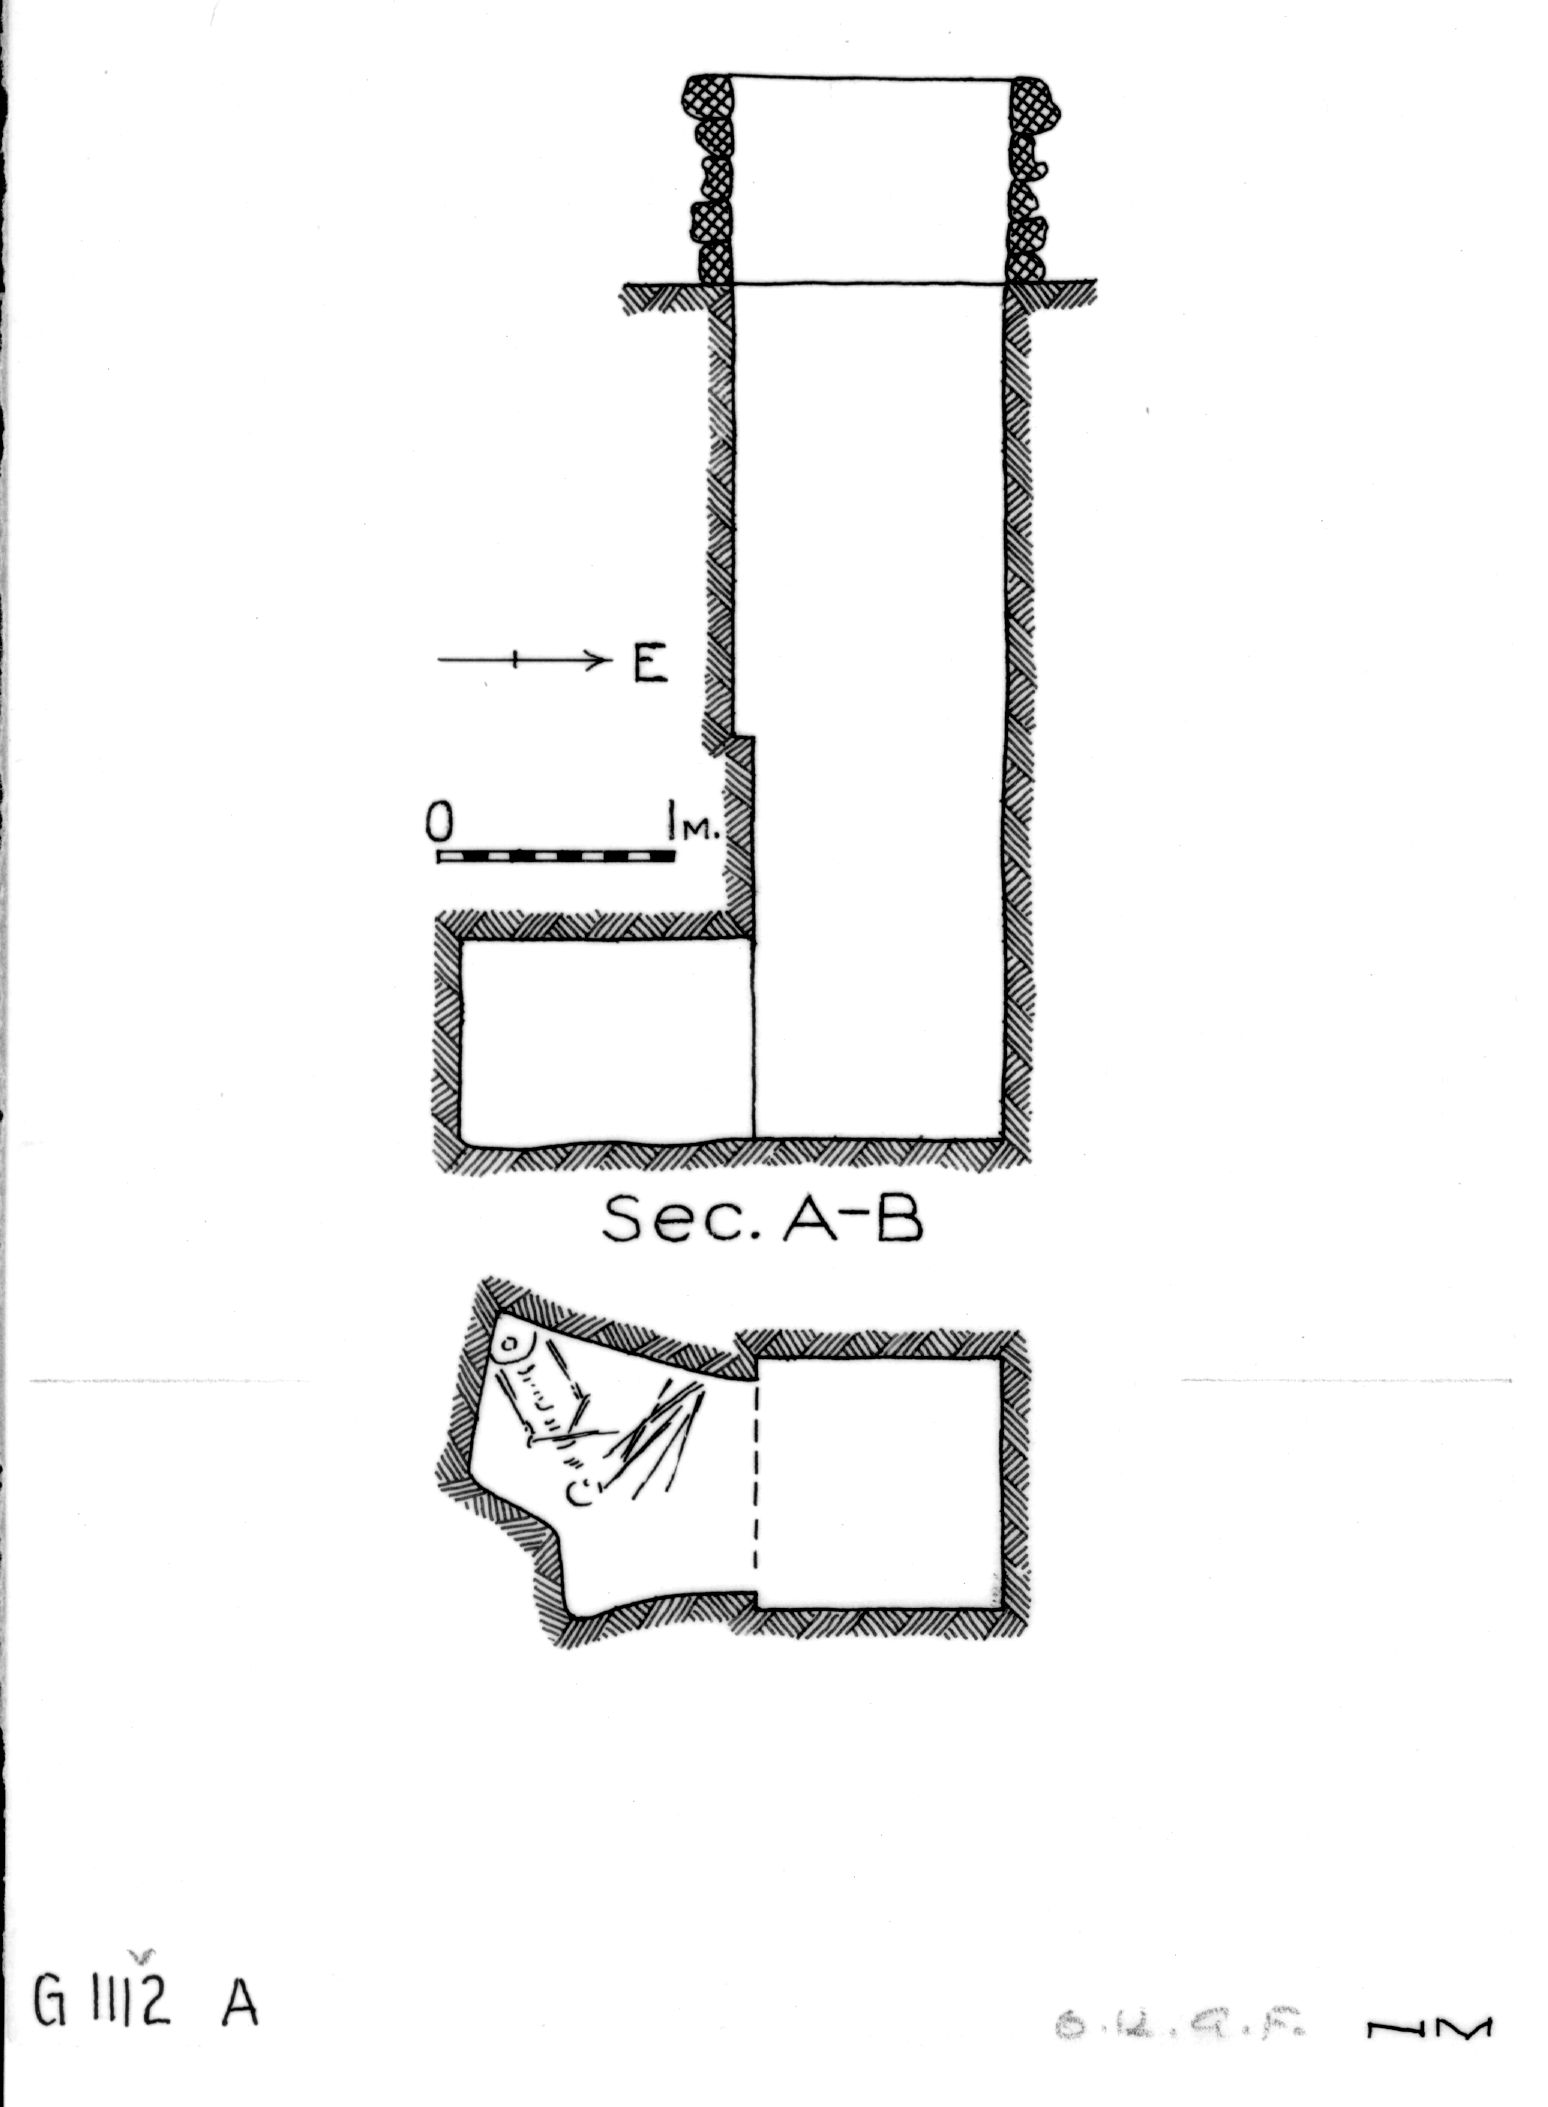 Maps and plans: G 1112+1113: G 1112, Shaft A